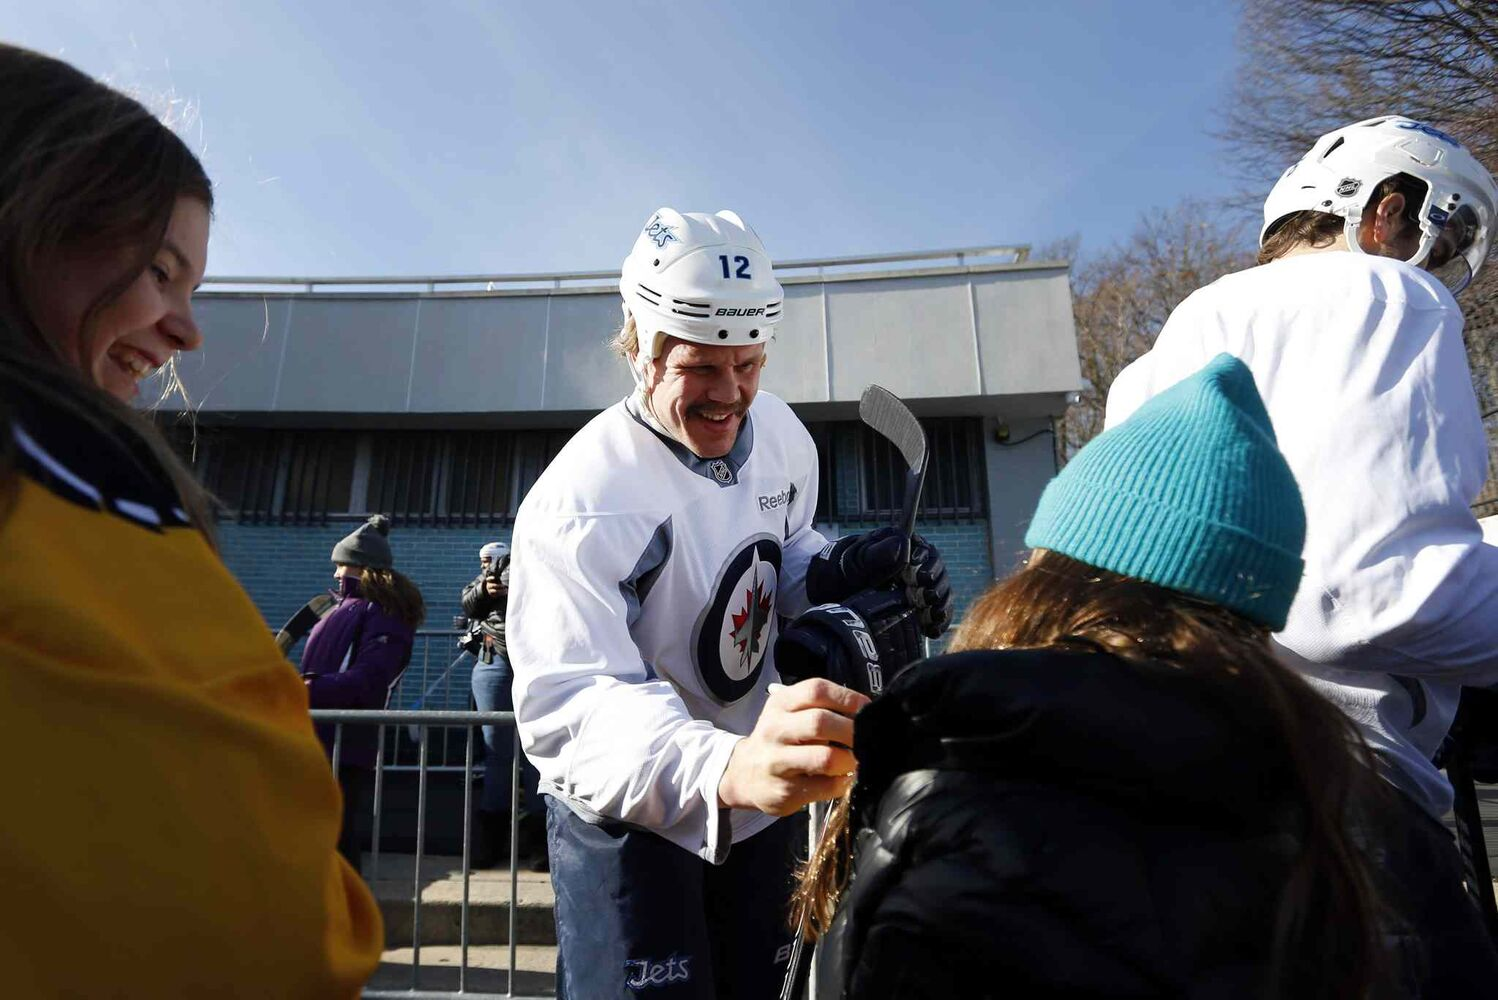 Olli Jokinen signs autographs for a pair of young fans. (Jason DeCrow / The Associated Press)